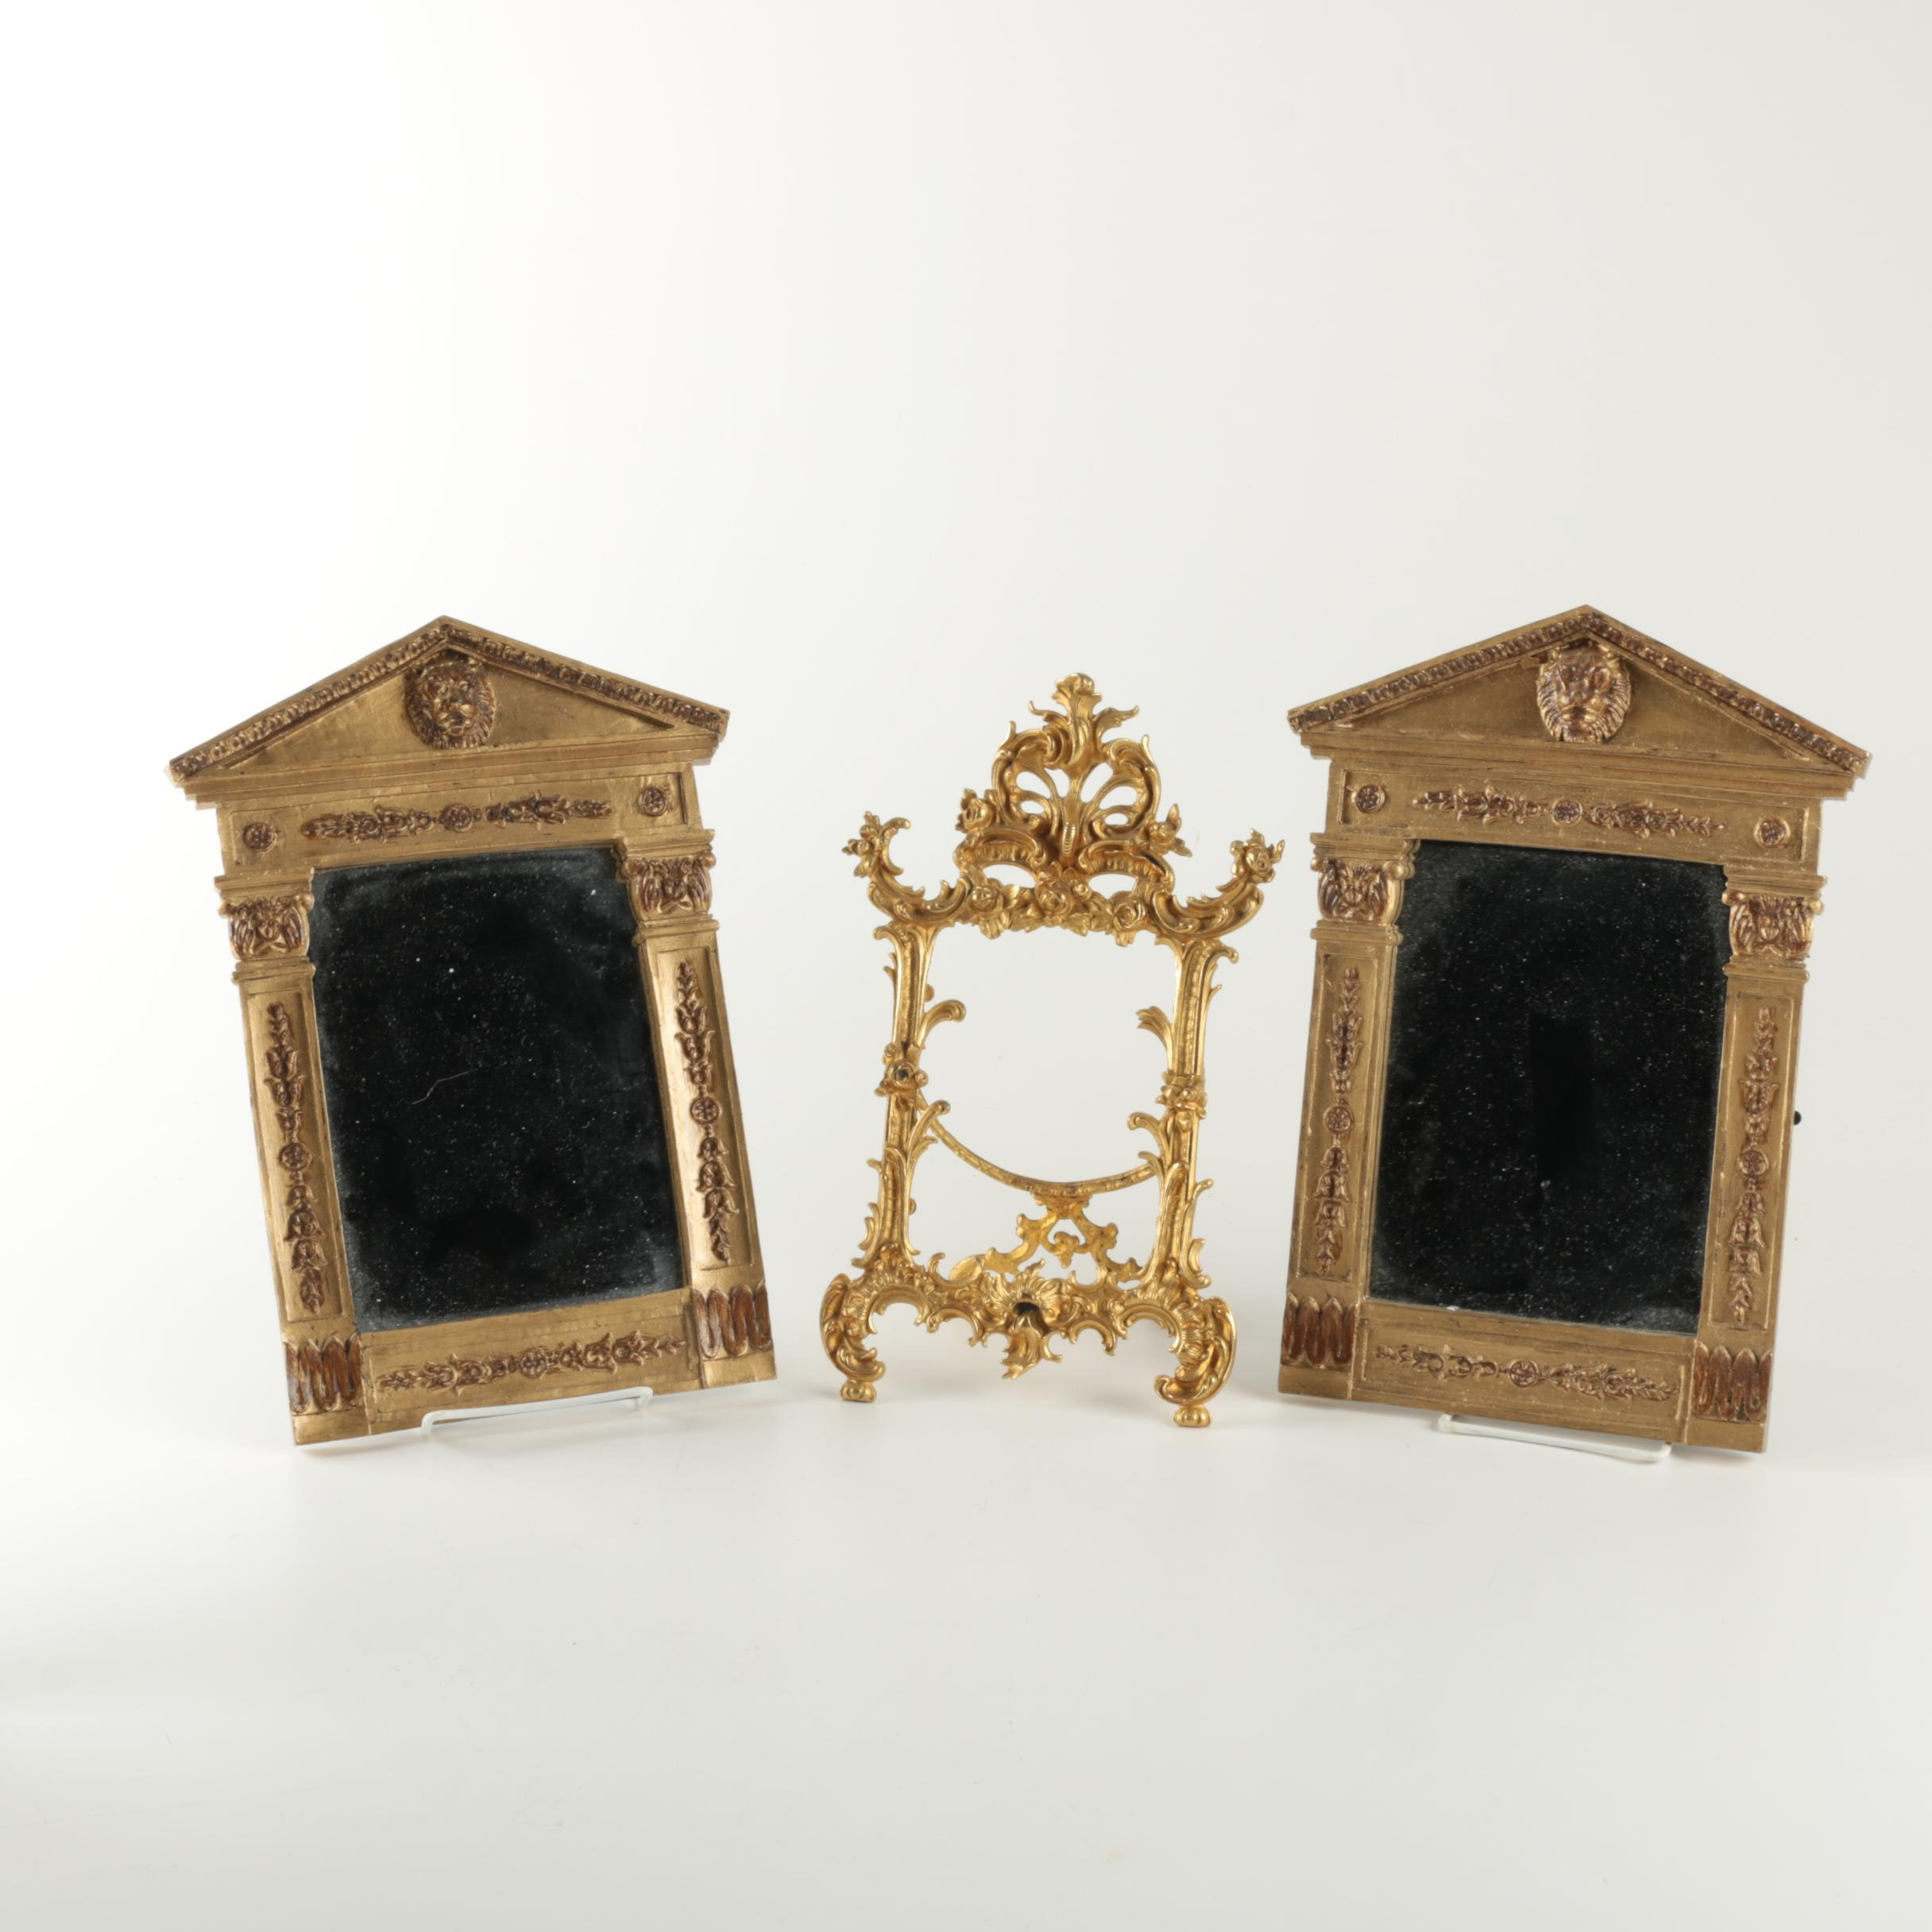 Neoclassical Style Wall Mirrors and Picture Frame